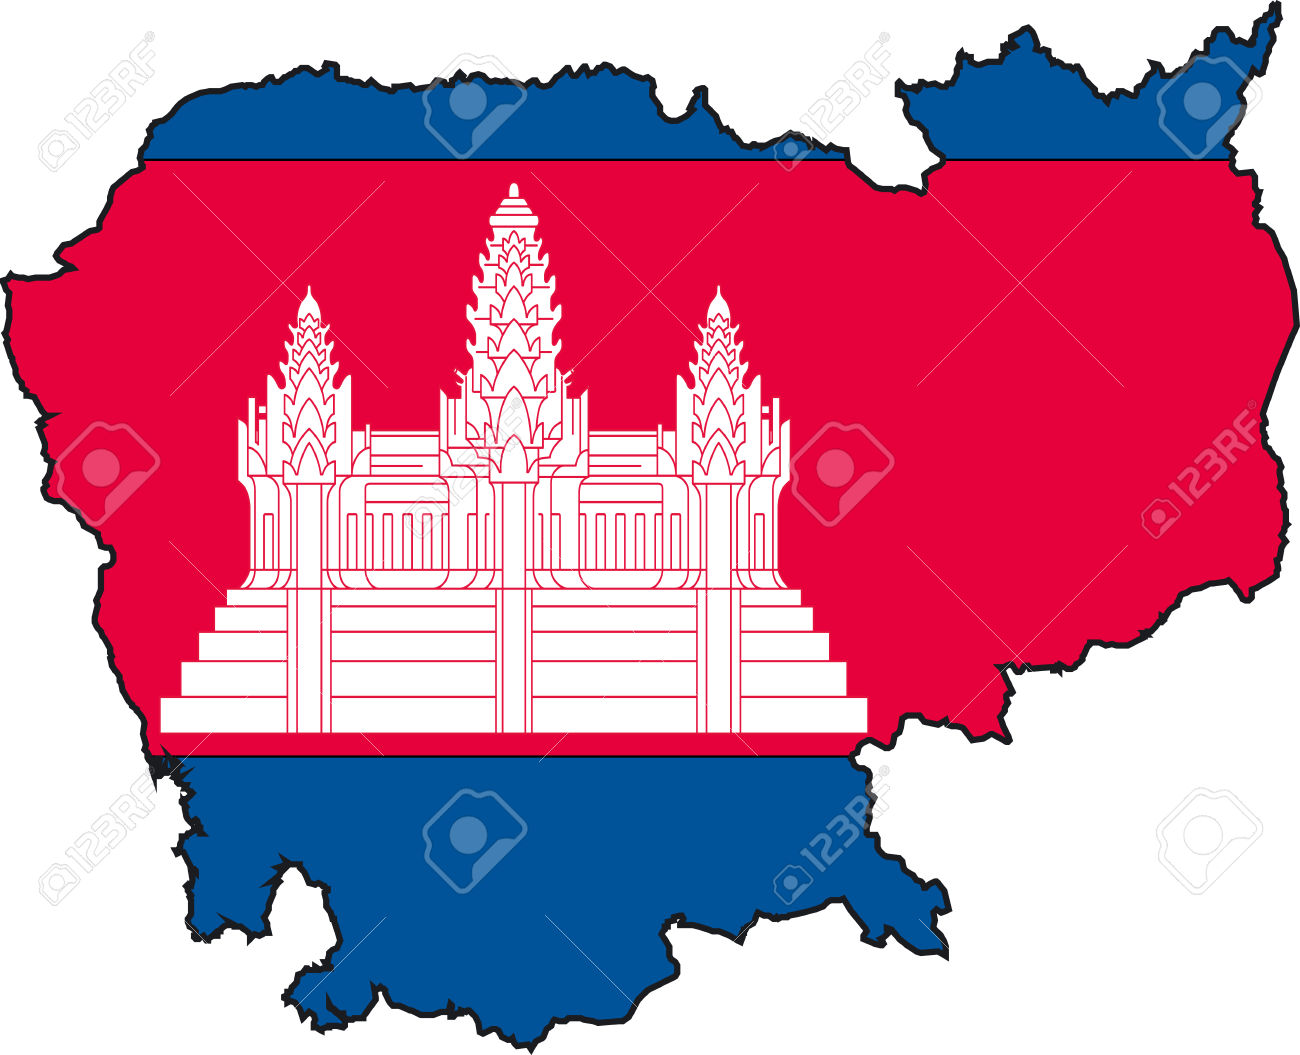 clipart map of cambodia - photo #7